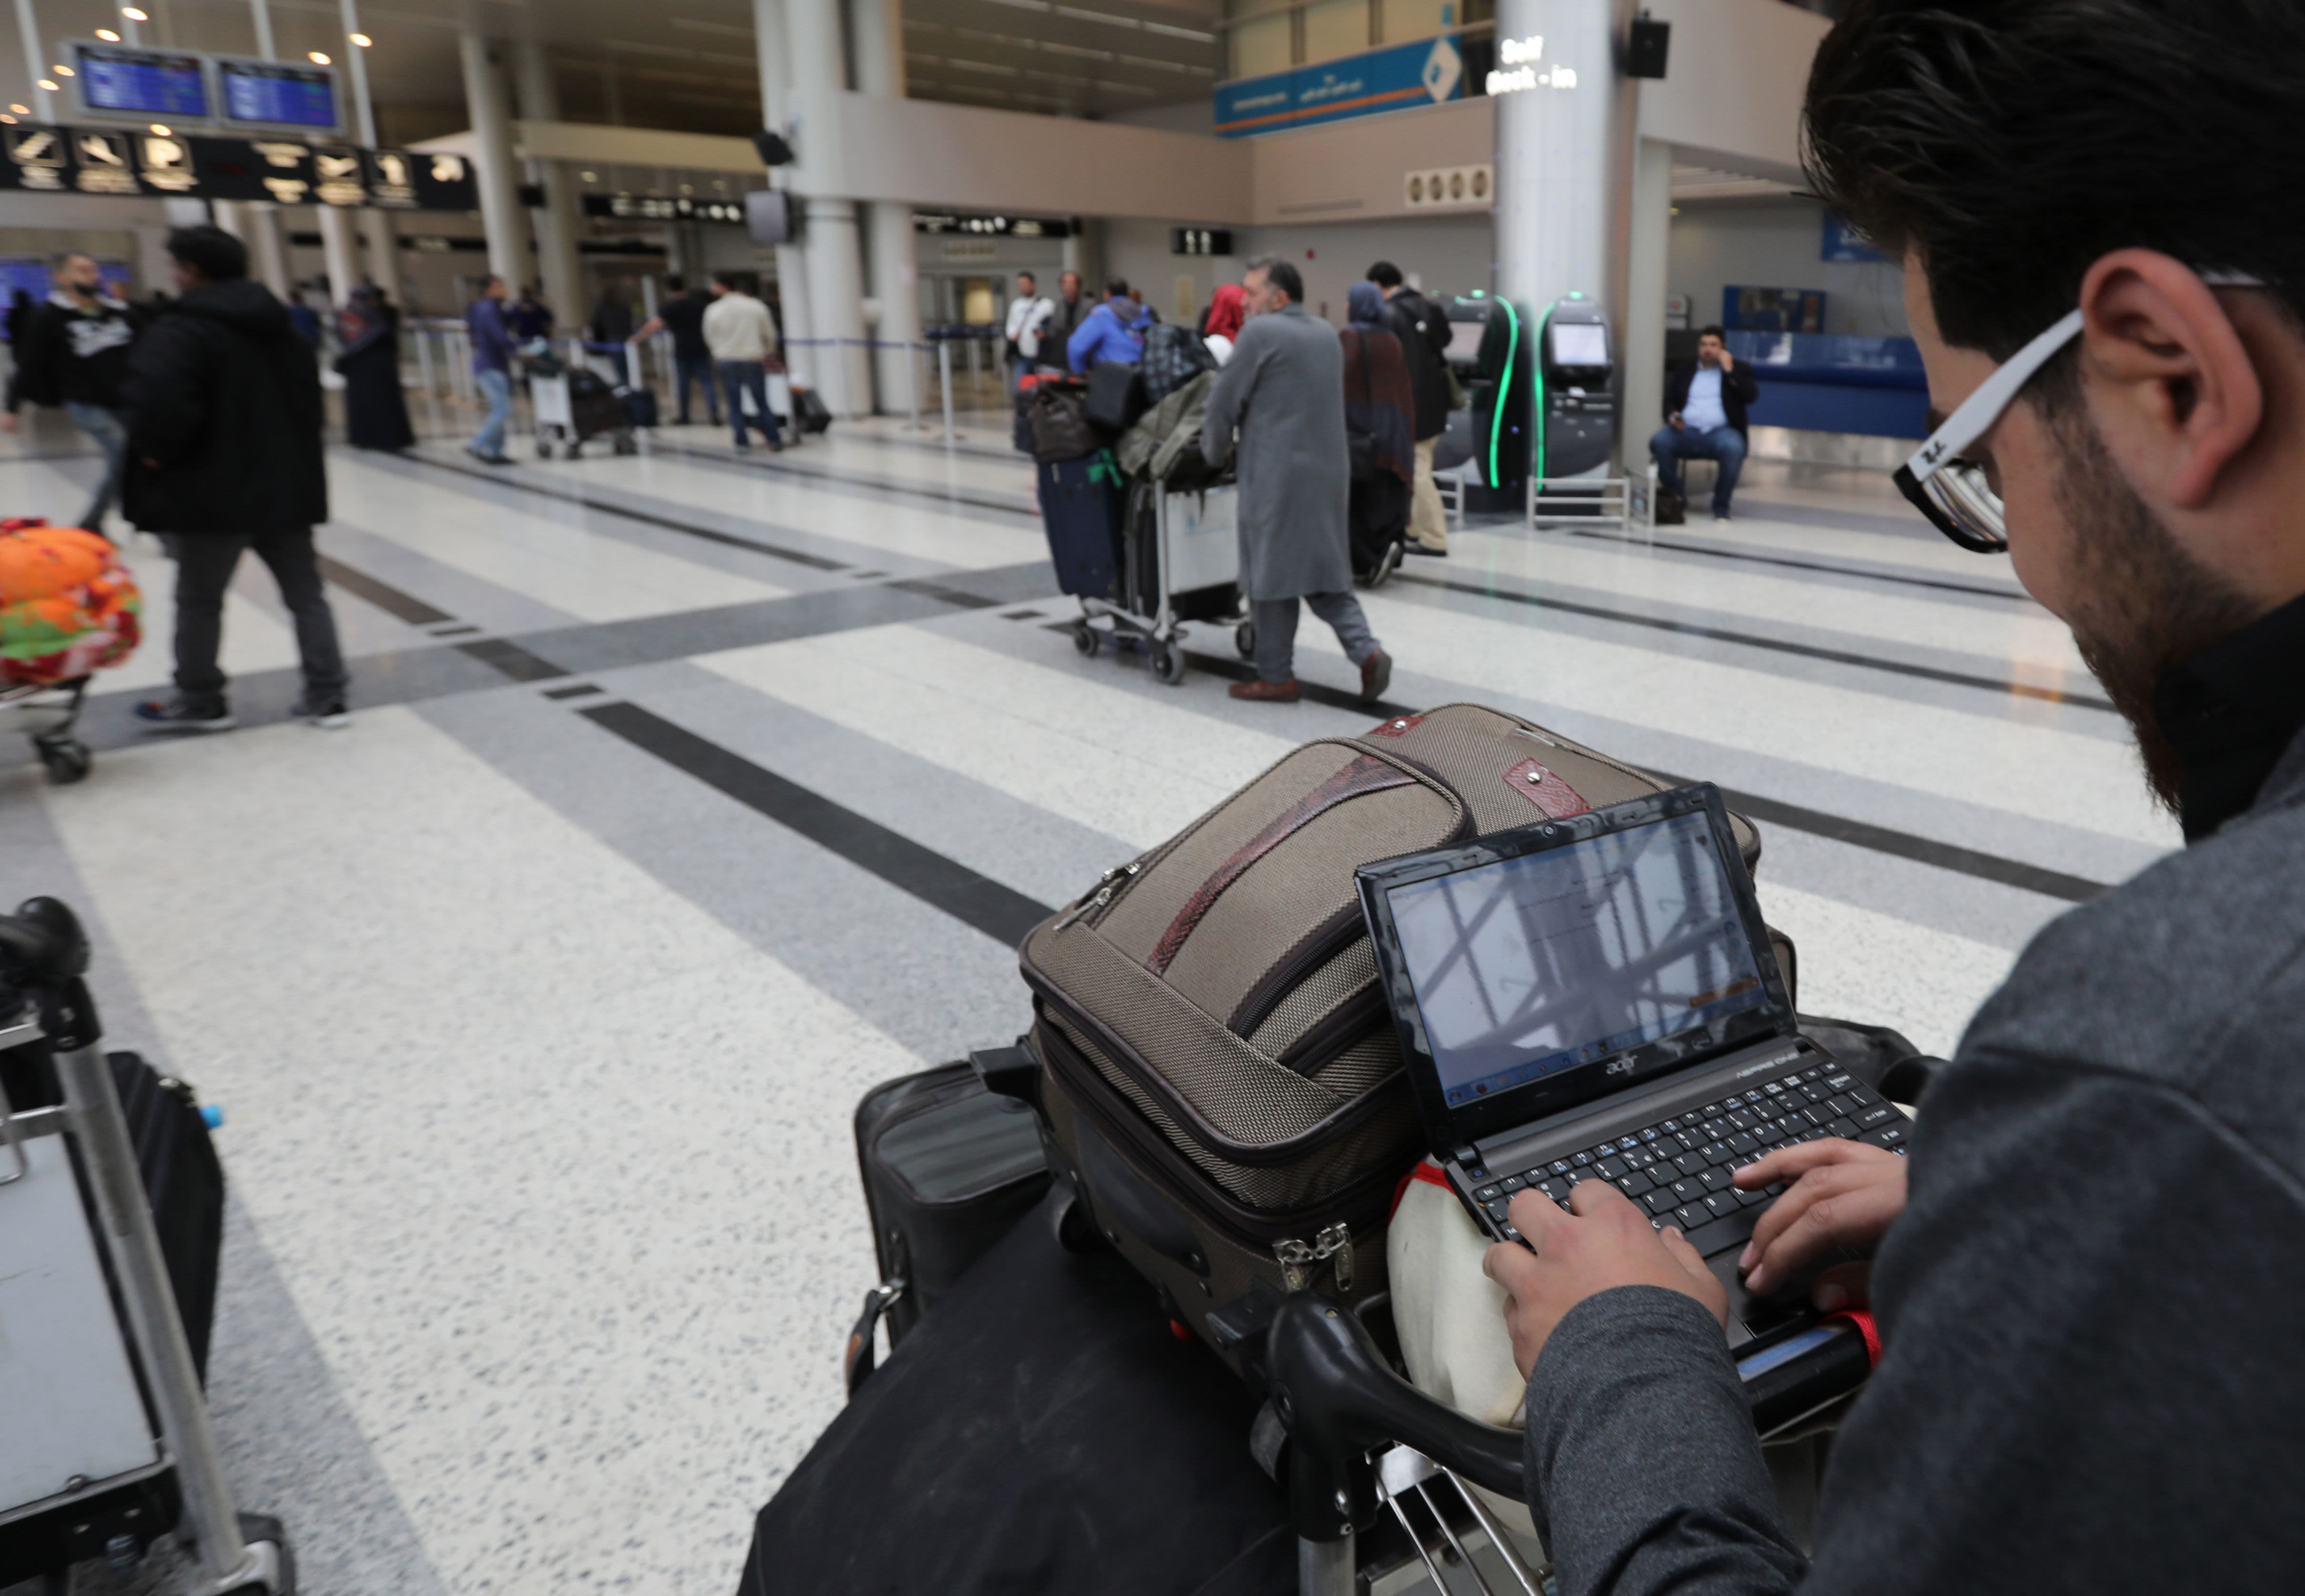 Federal court rules warrantless searches of international travelers' electronics at airports are unconstitutional